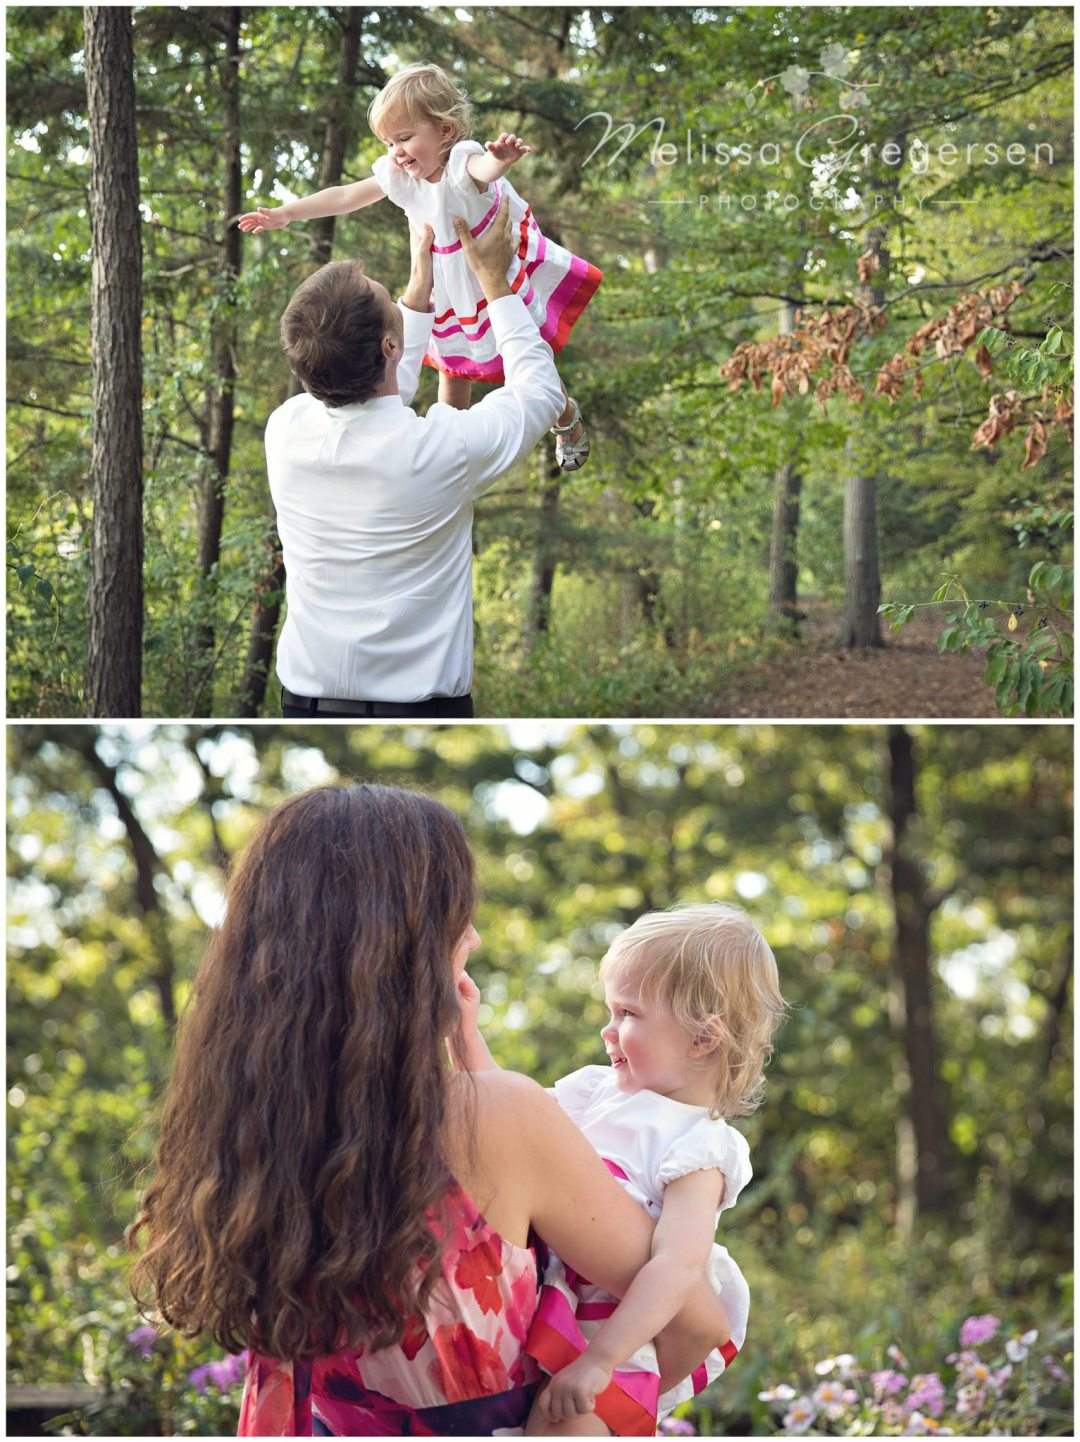 Srajer Family :: Kalamazoo Michigan Family Photographer - Gregersen Photography